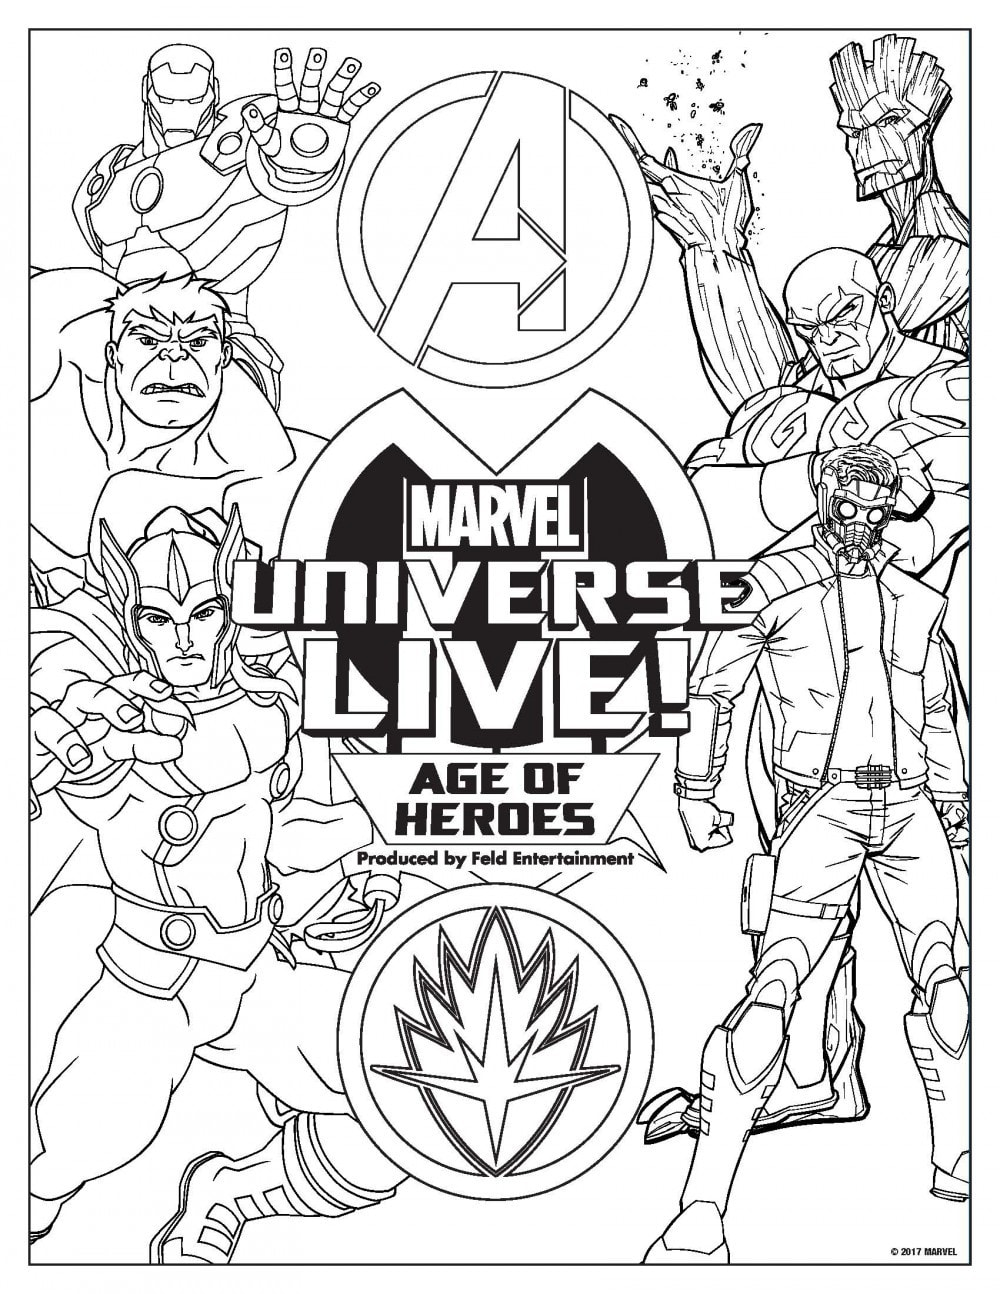 Get Your Tickets for MARVEL UNIVERSE LIVE! Portland